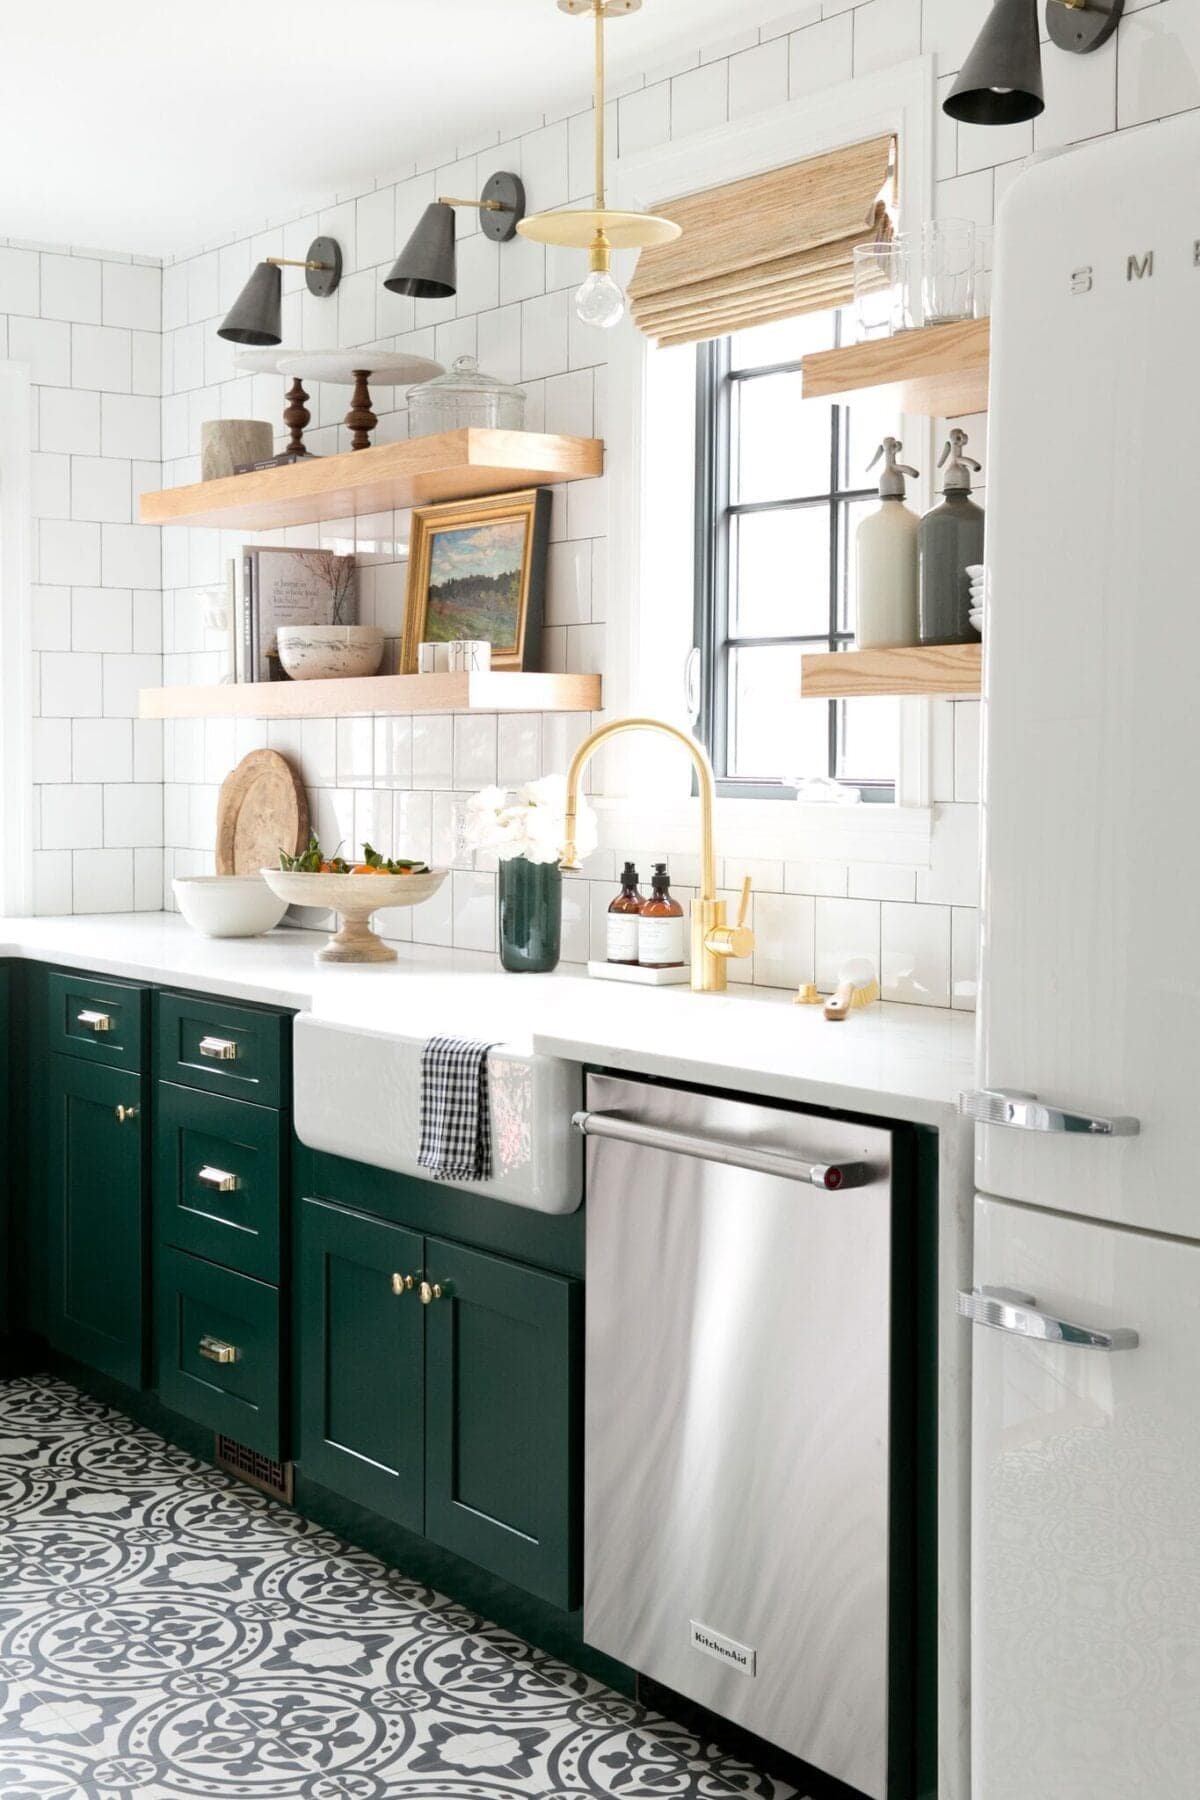 Green Kitchen Cabinet Inspiration - Bless'er House